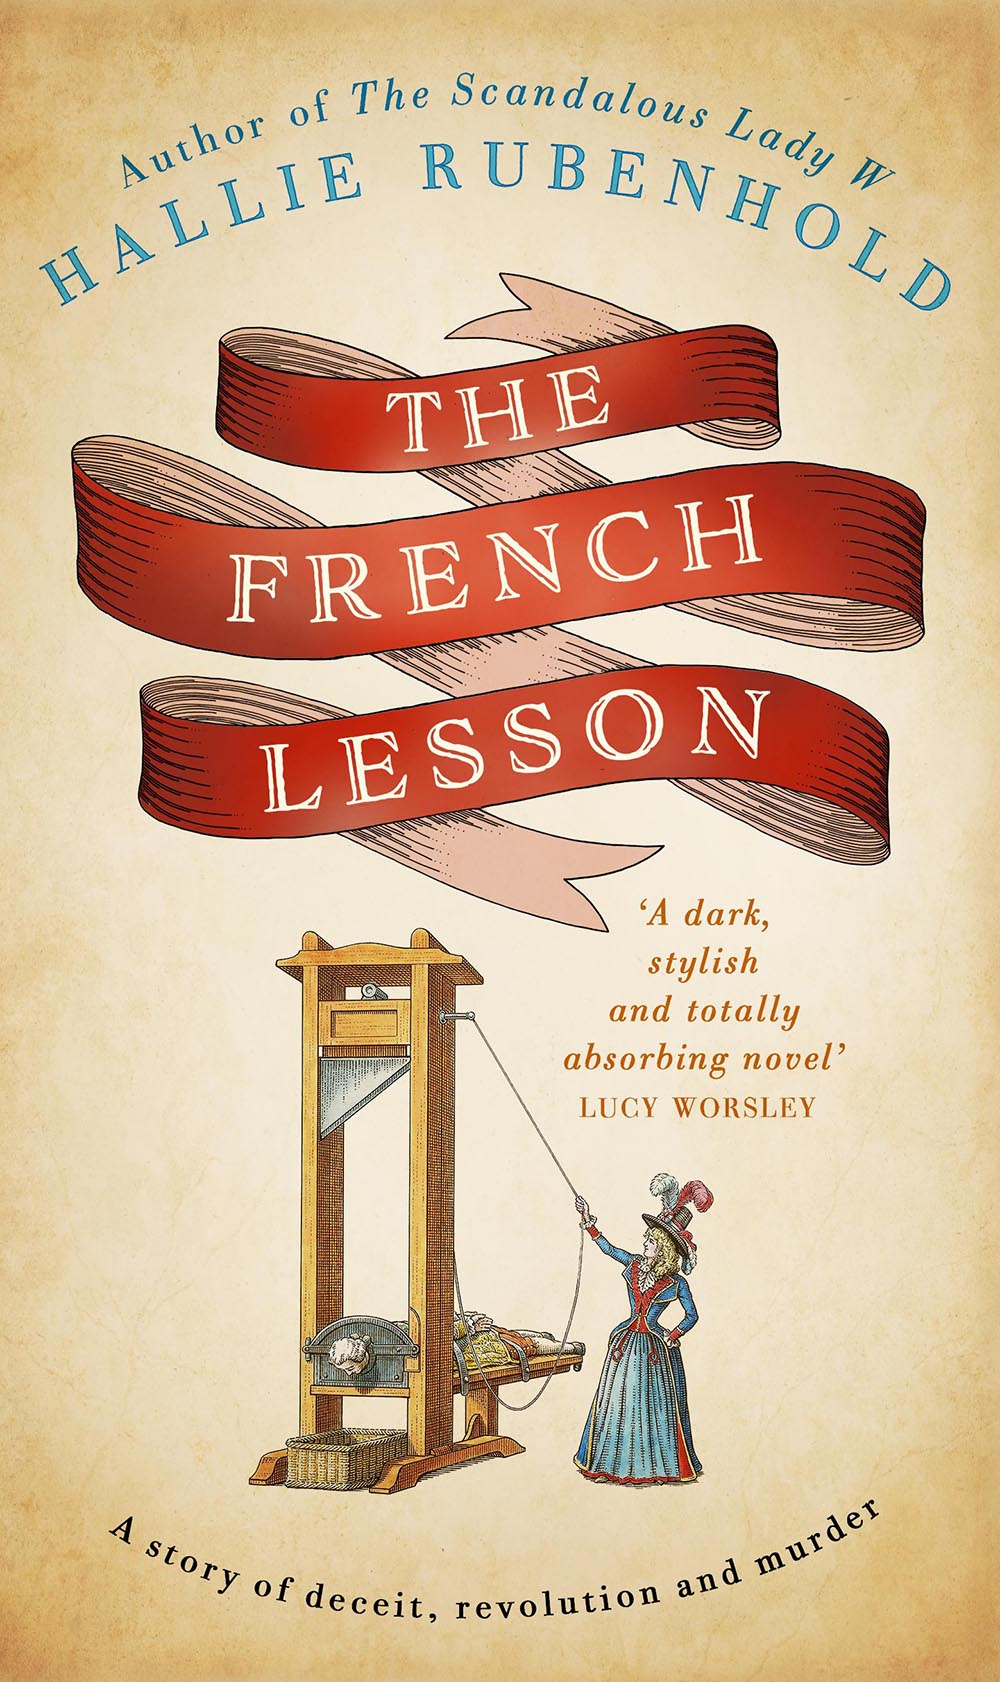 The French Lesson by Dave Hopkins